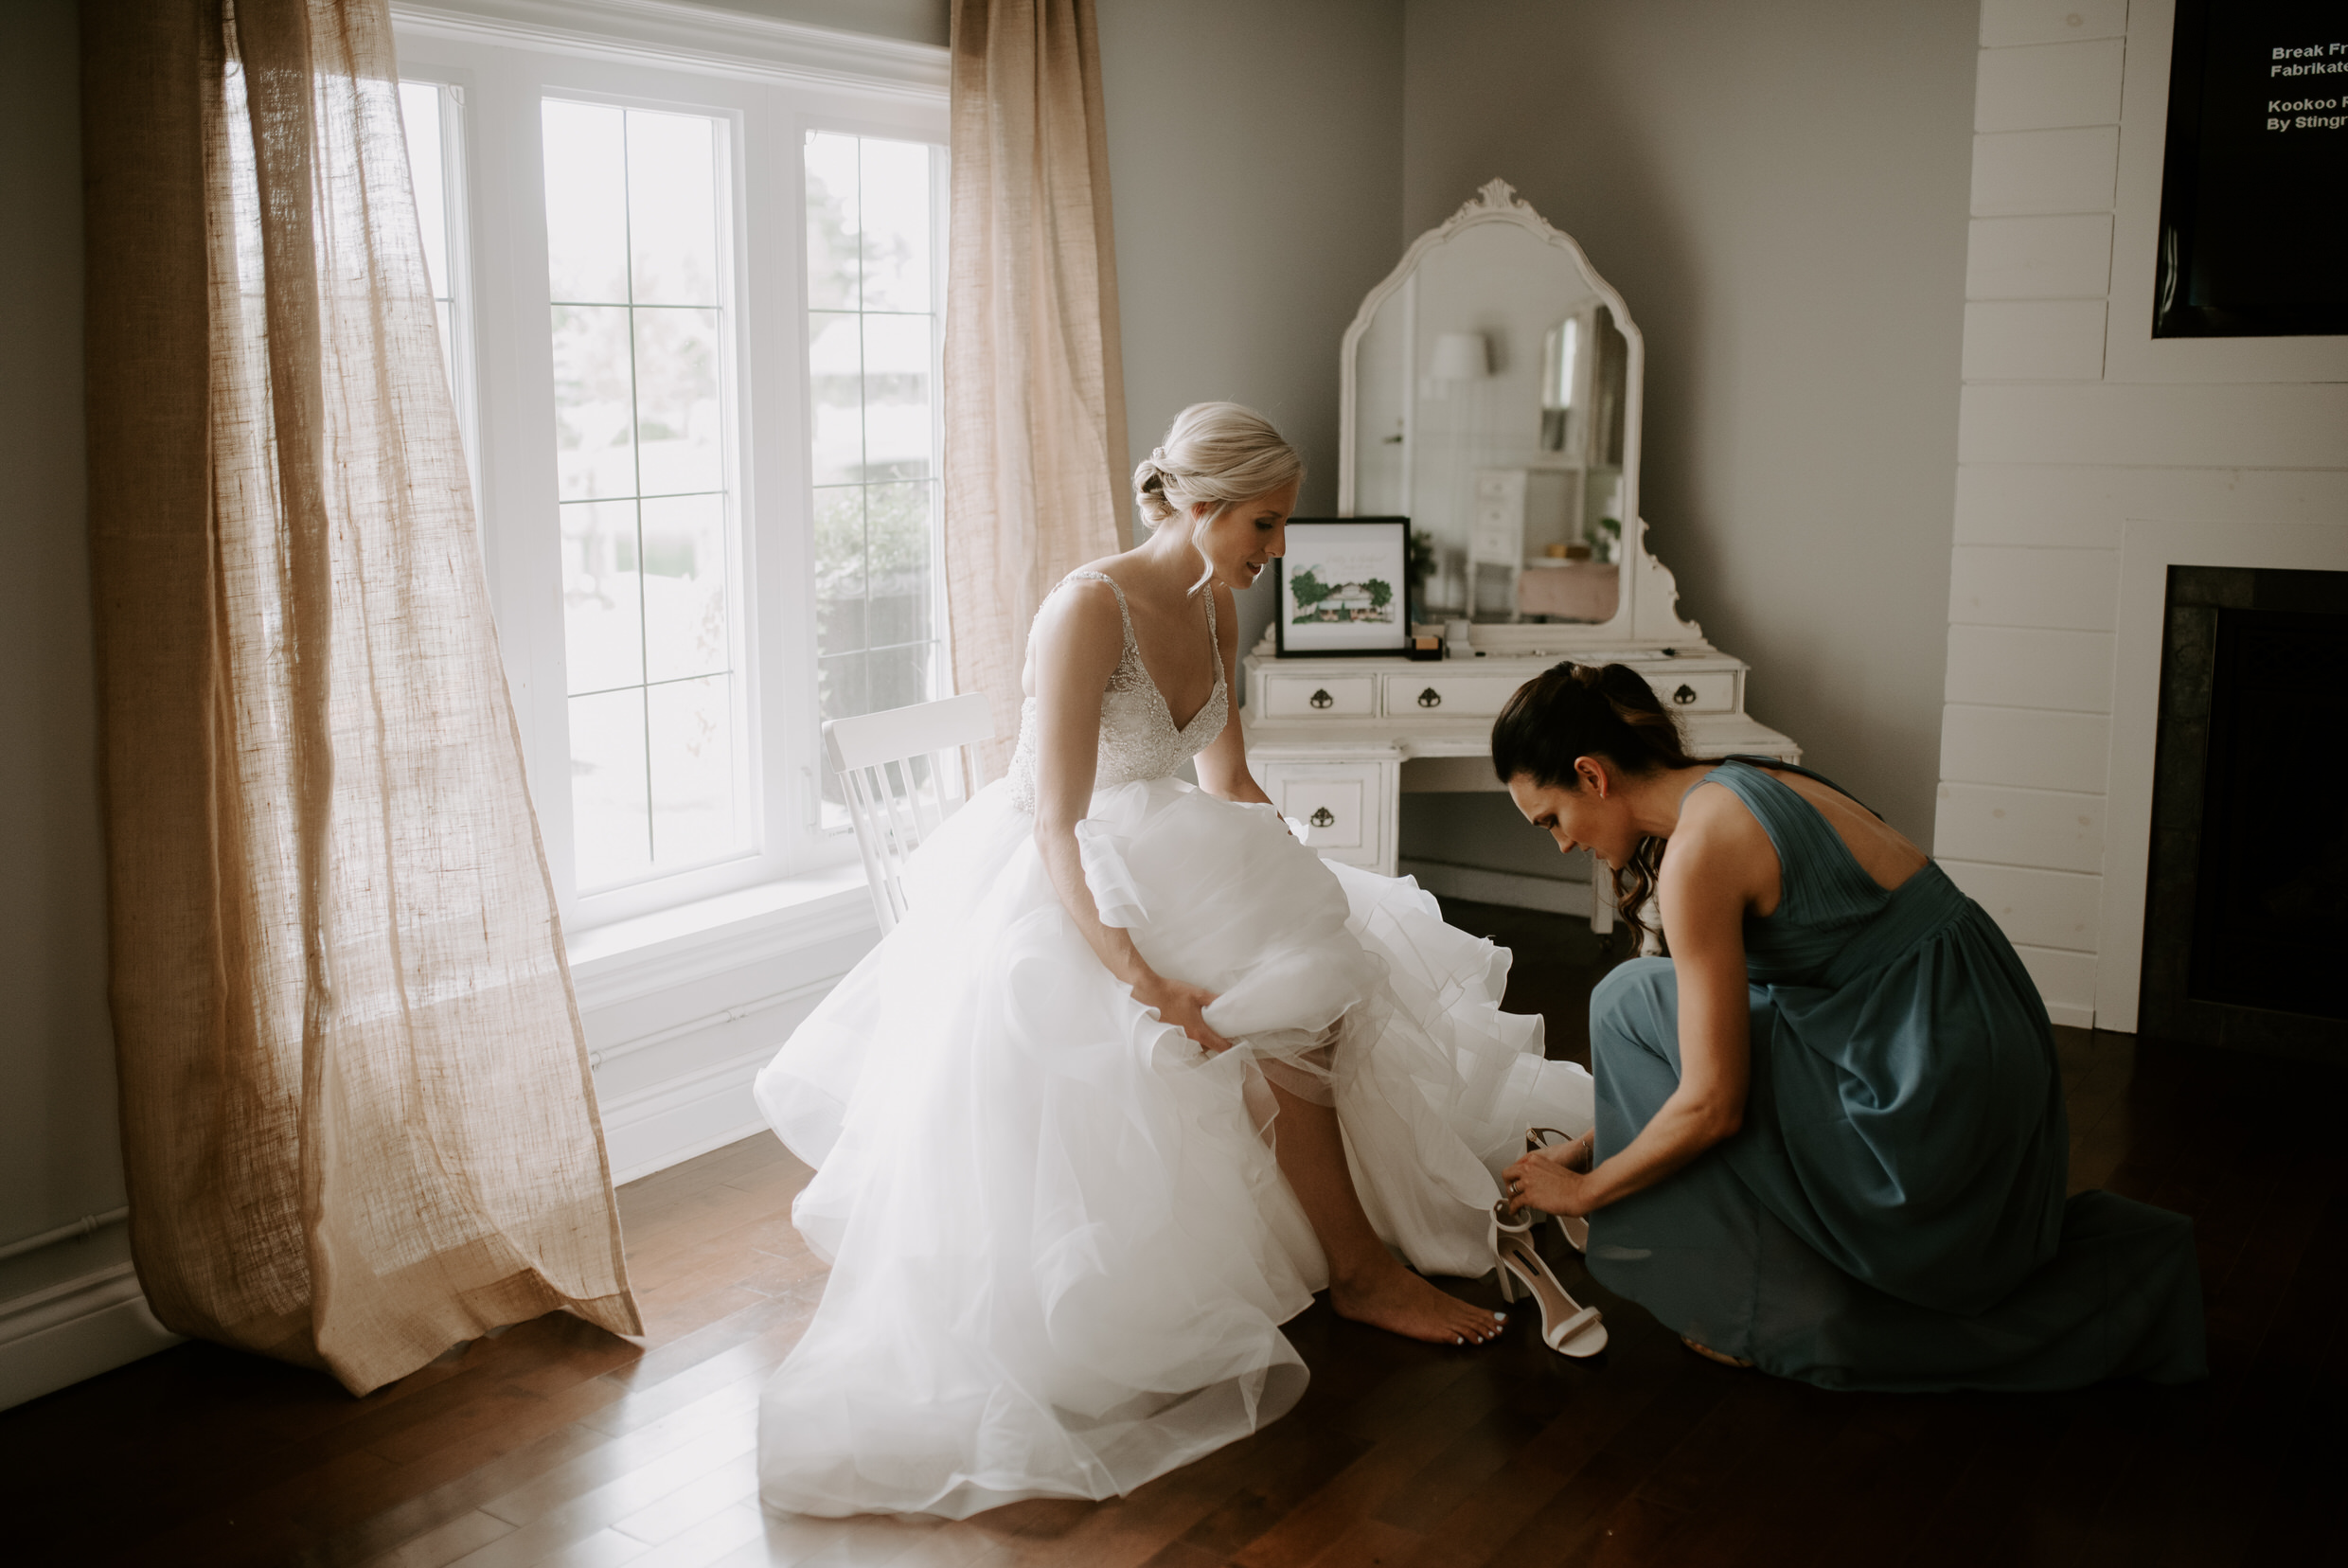 Belcroft Estates Wedding - bridesmaid helping bride with shoes